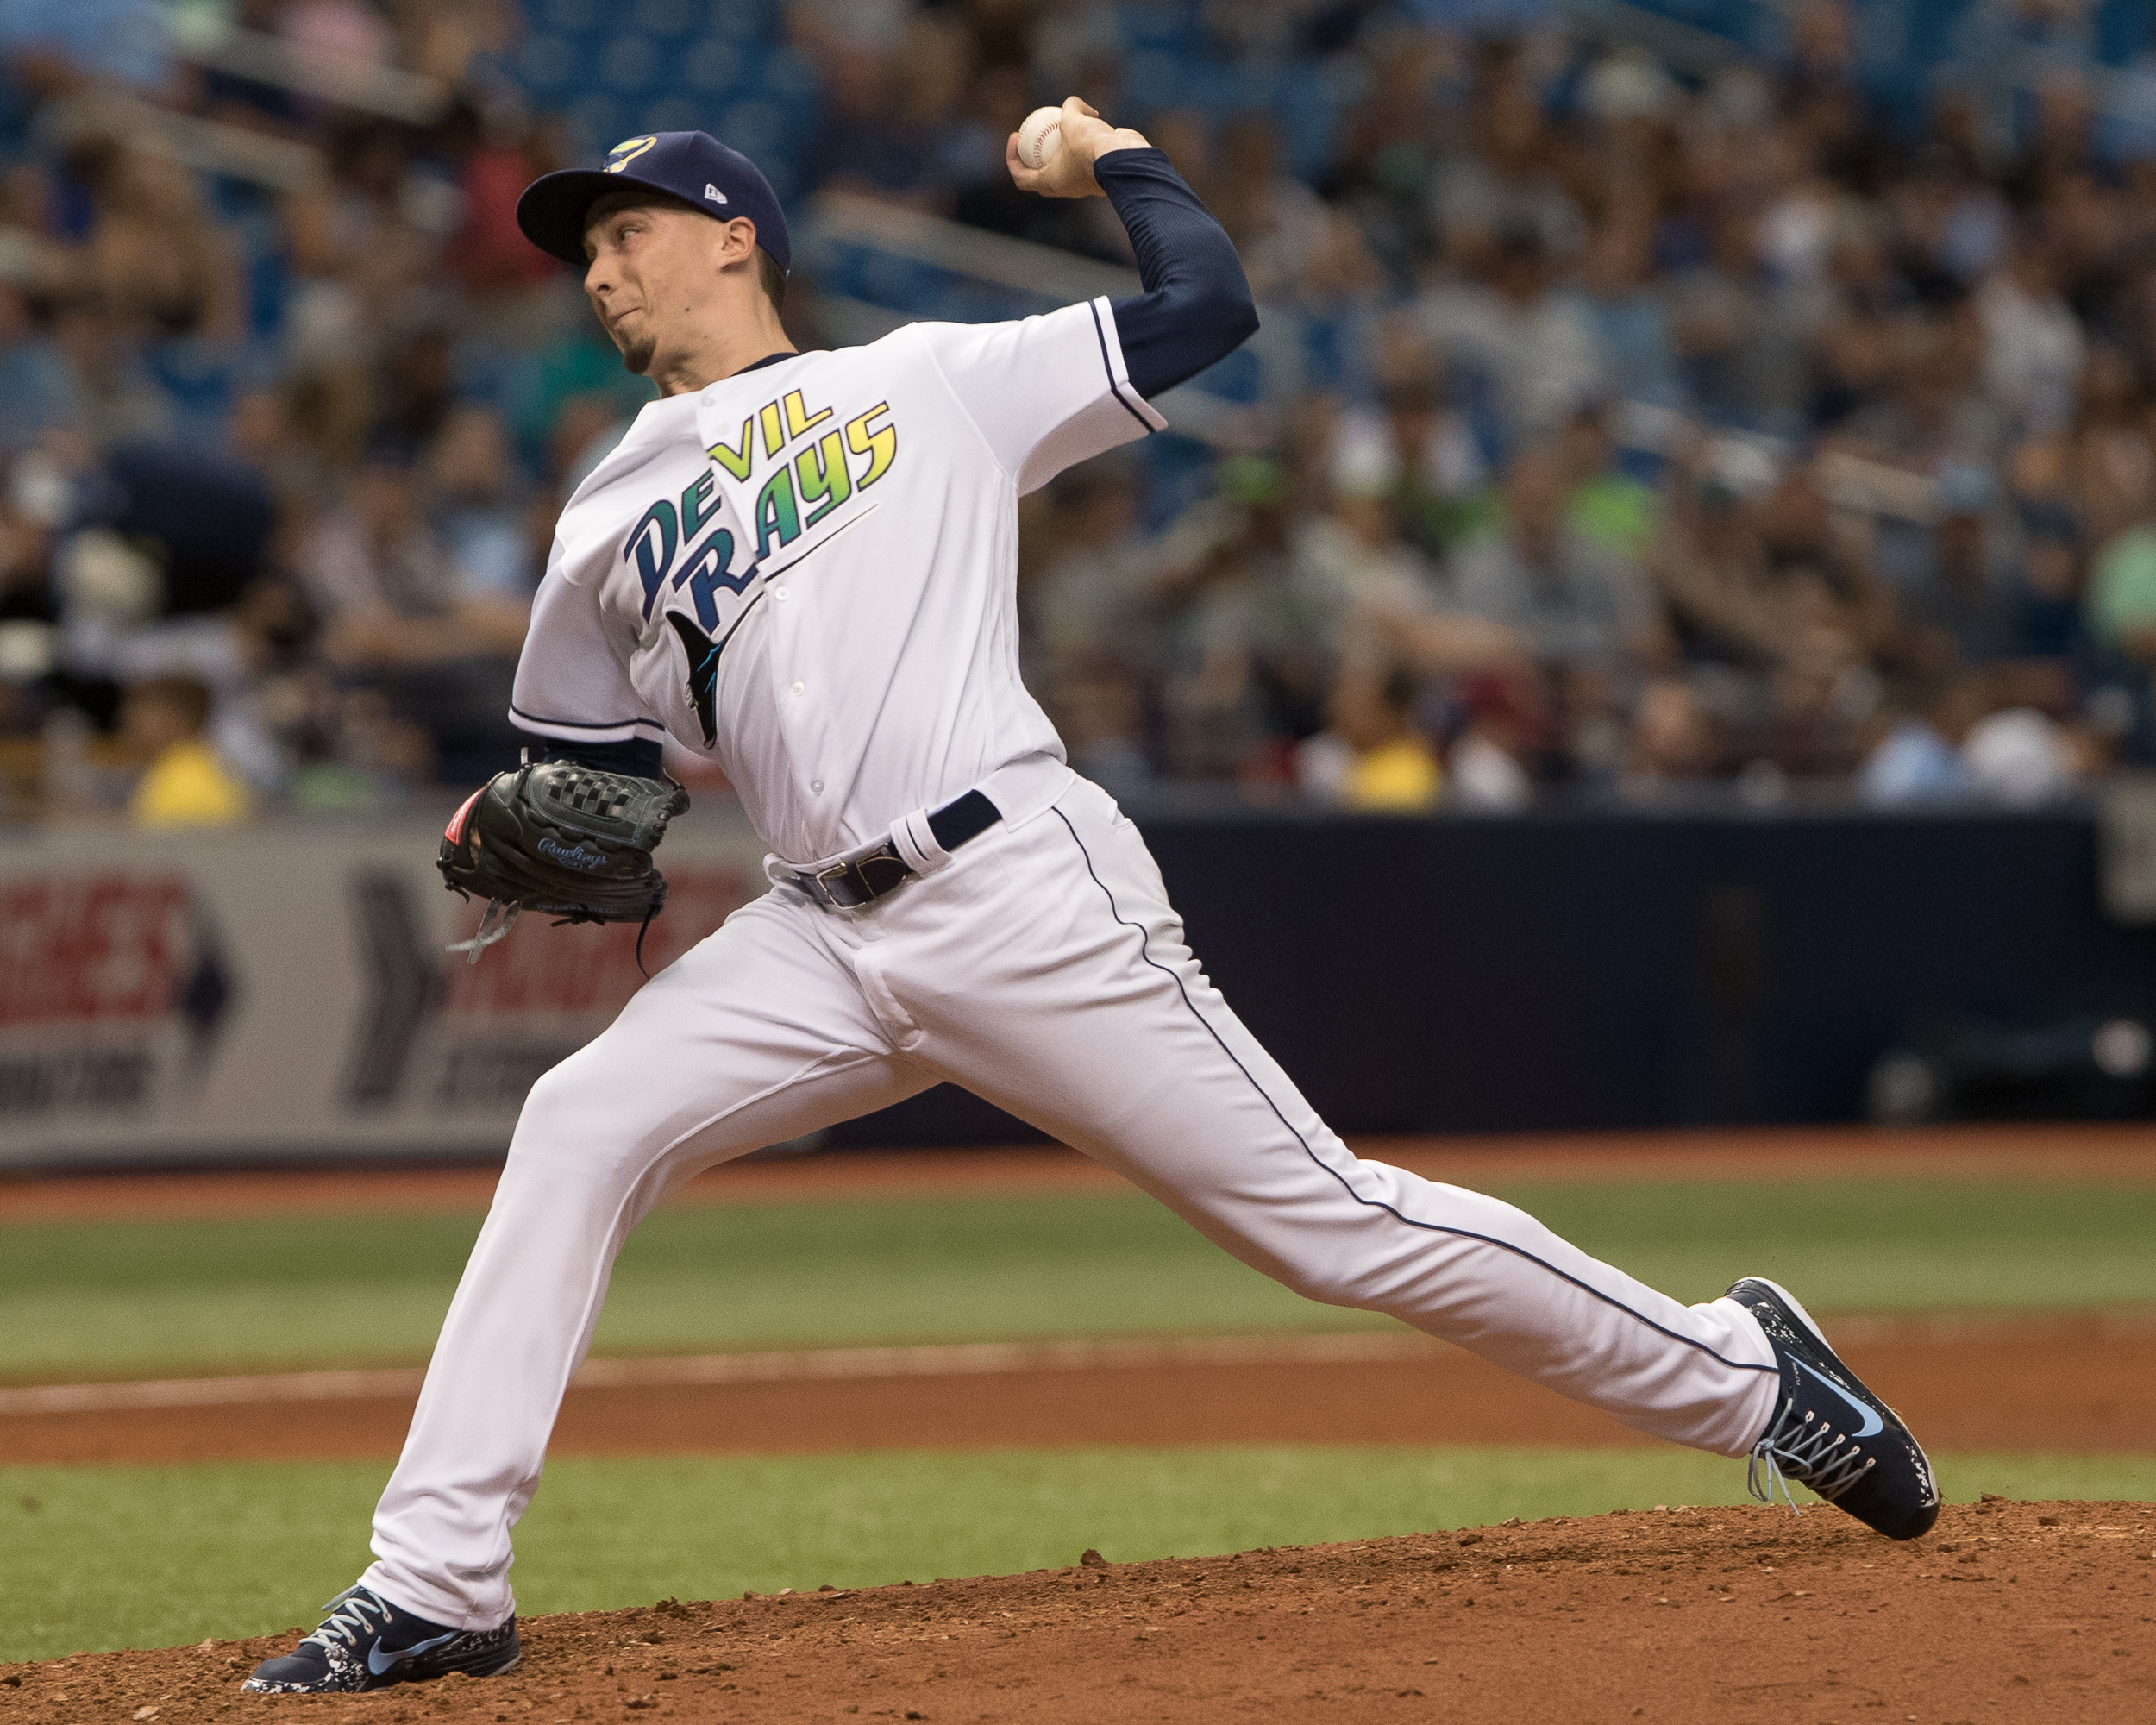 Blake Snell helped the Rays end an eight-game slide./STEVEN MUNCIE